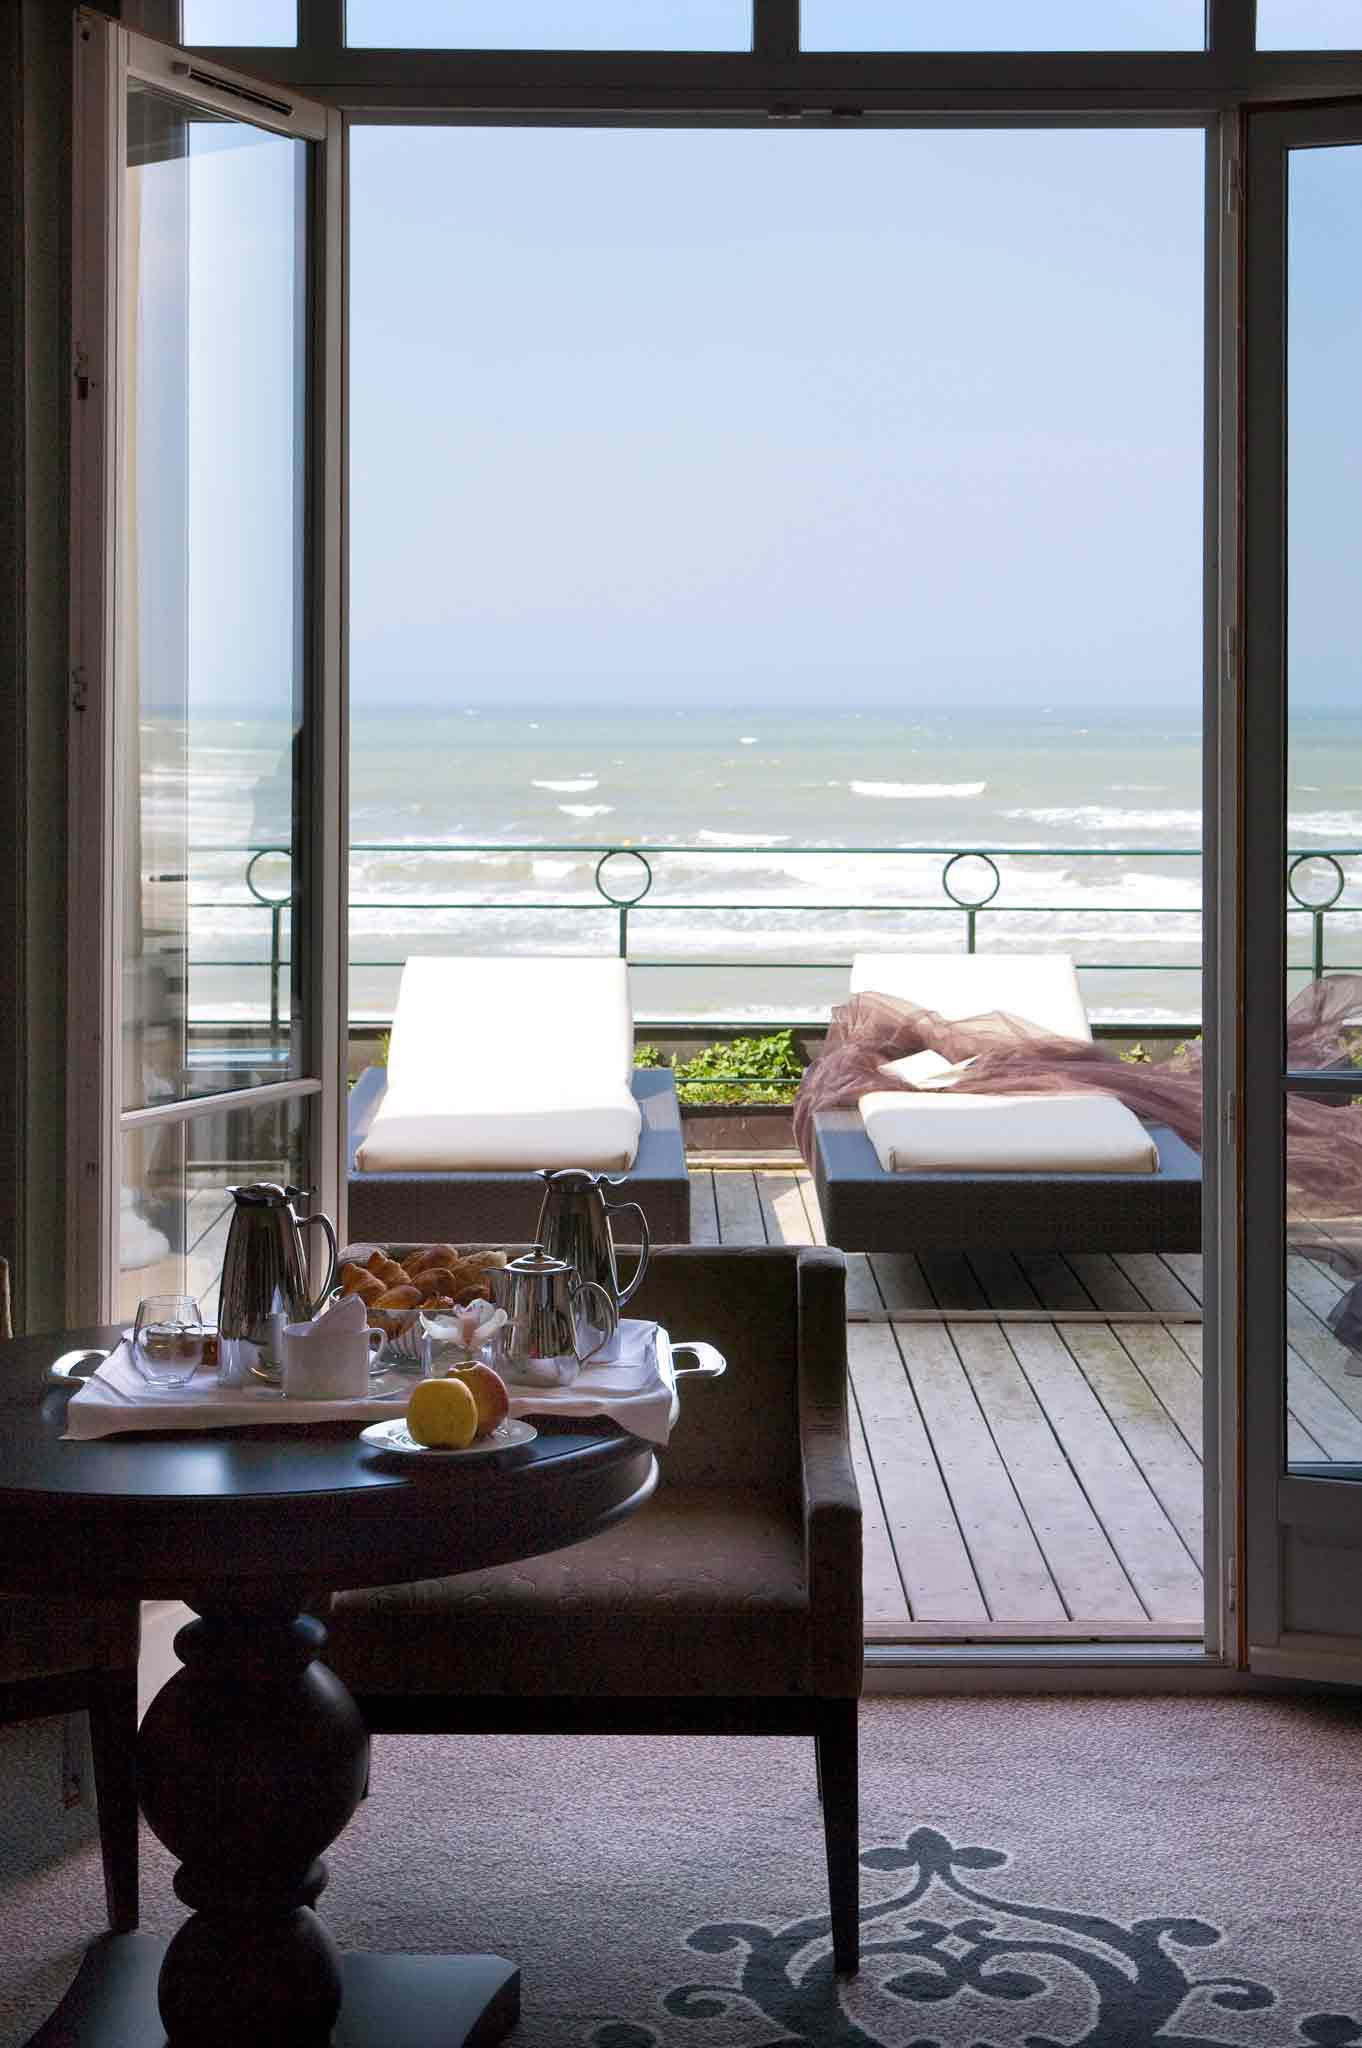 Le Grand Hotel Cabourg - MGallery Collection 客房视图